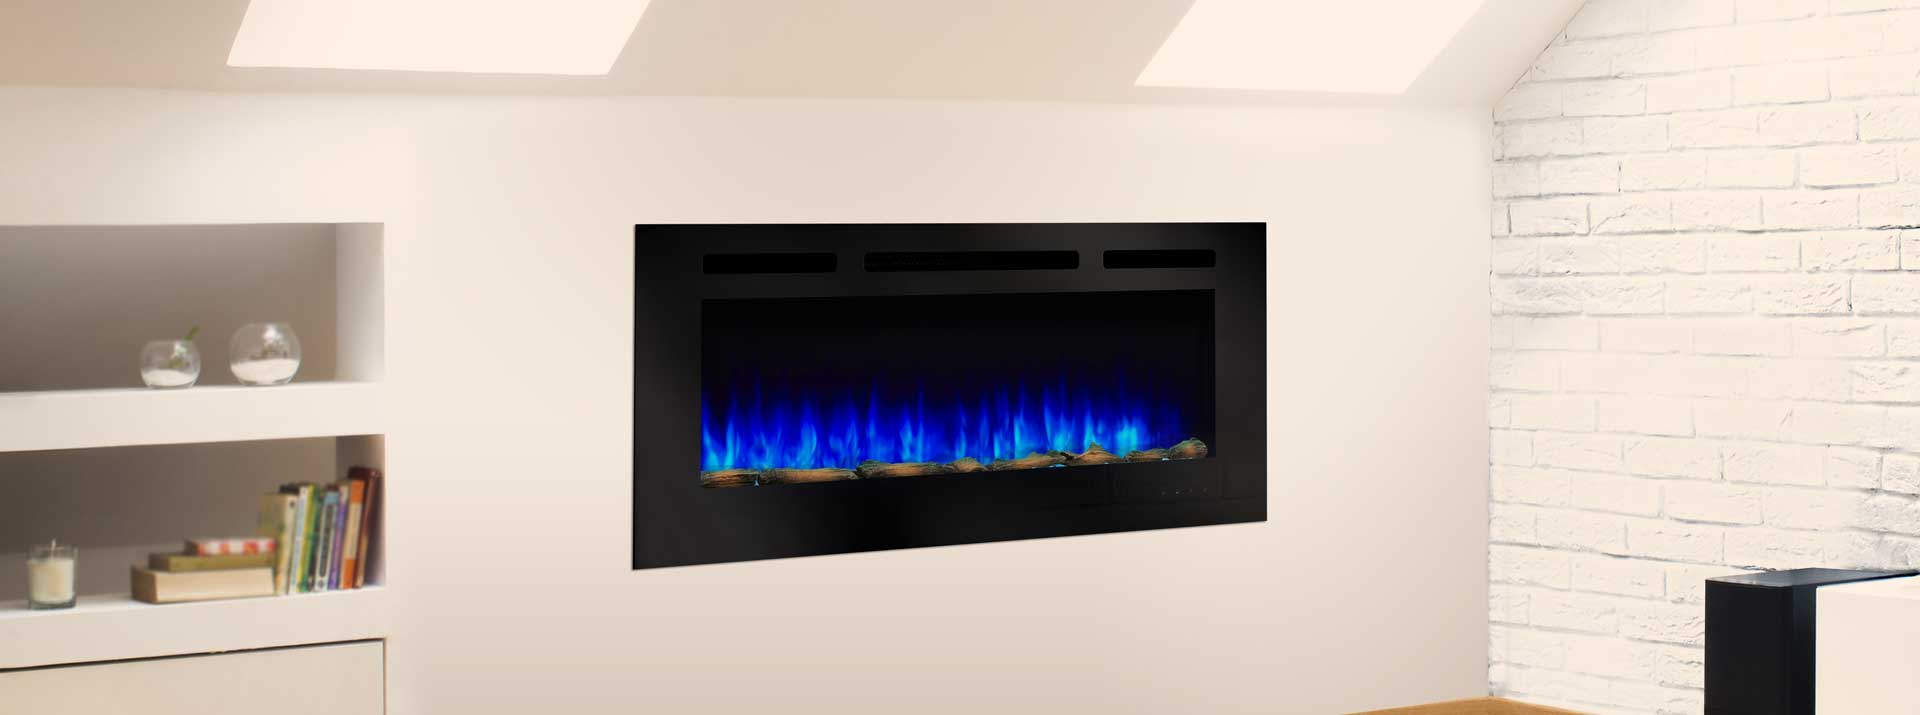 Simplifire Allusion Electric Fireplace Series Monessen Hearth Portable Wiring Diagram Get Free Image